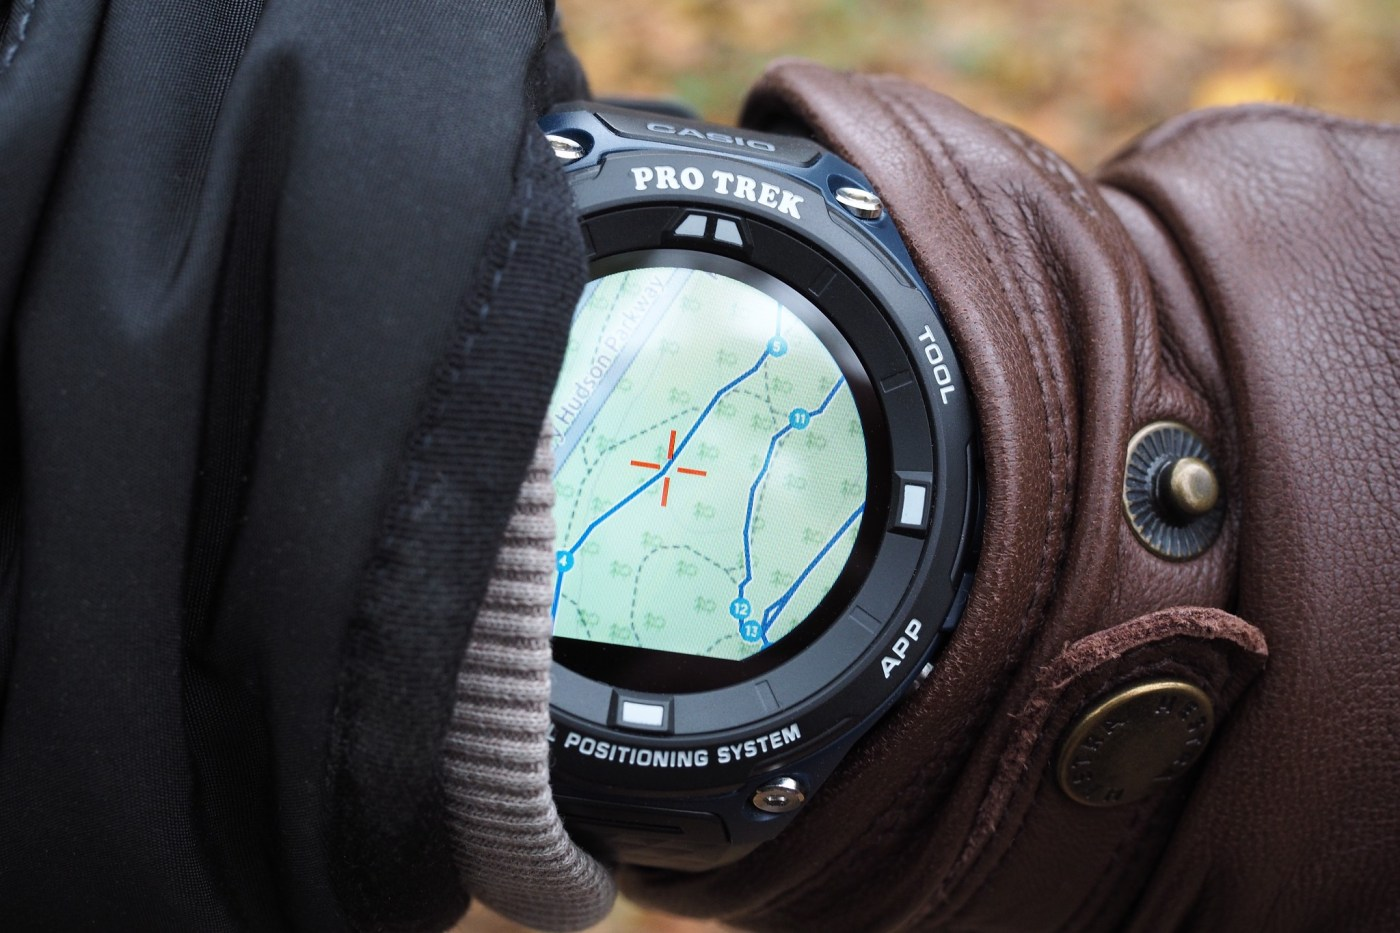 Casio Pro Trek Connected using GPS